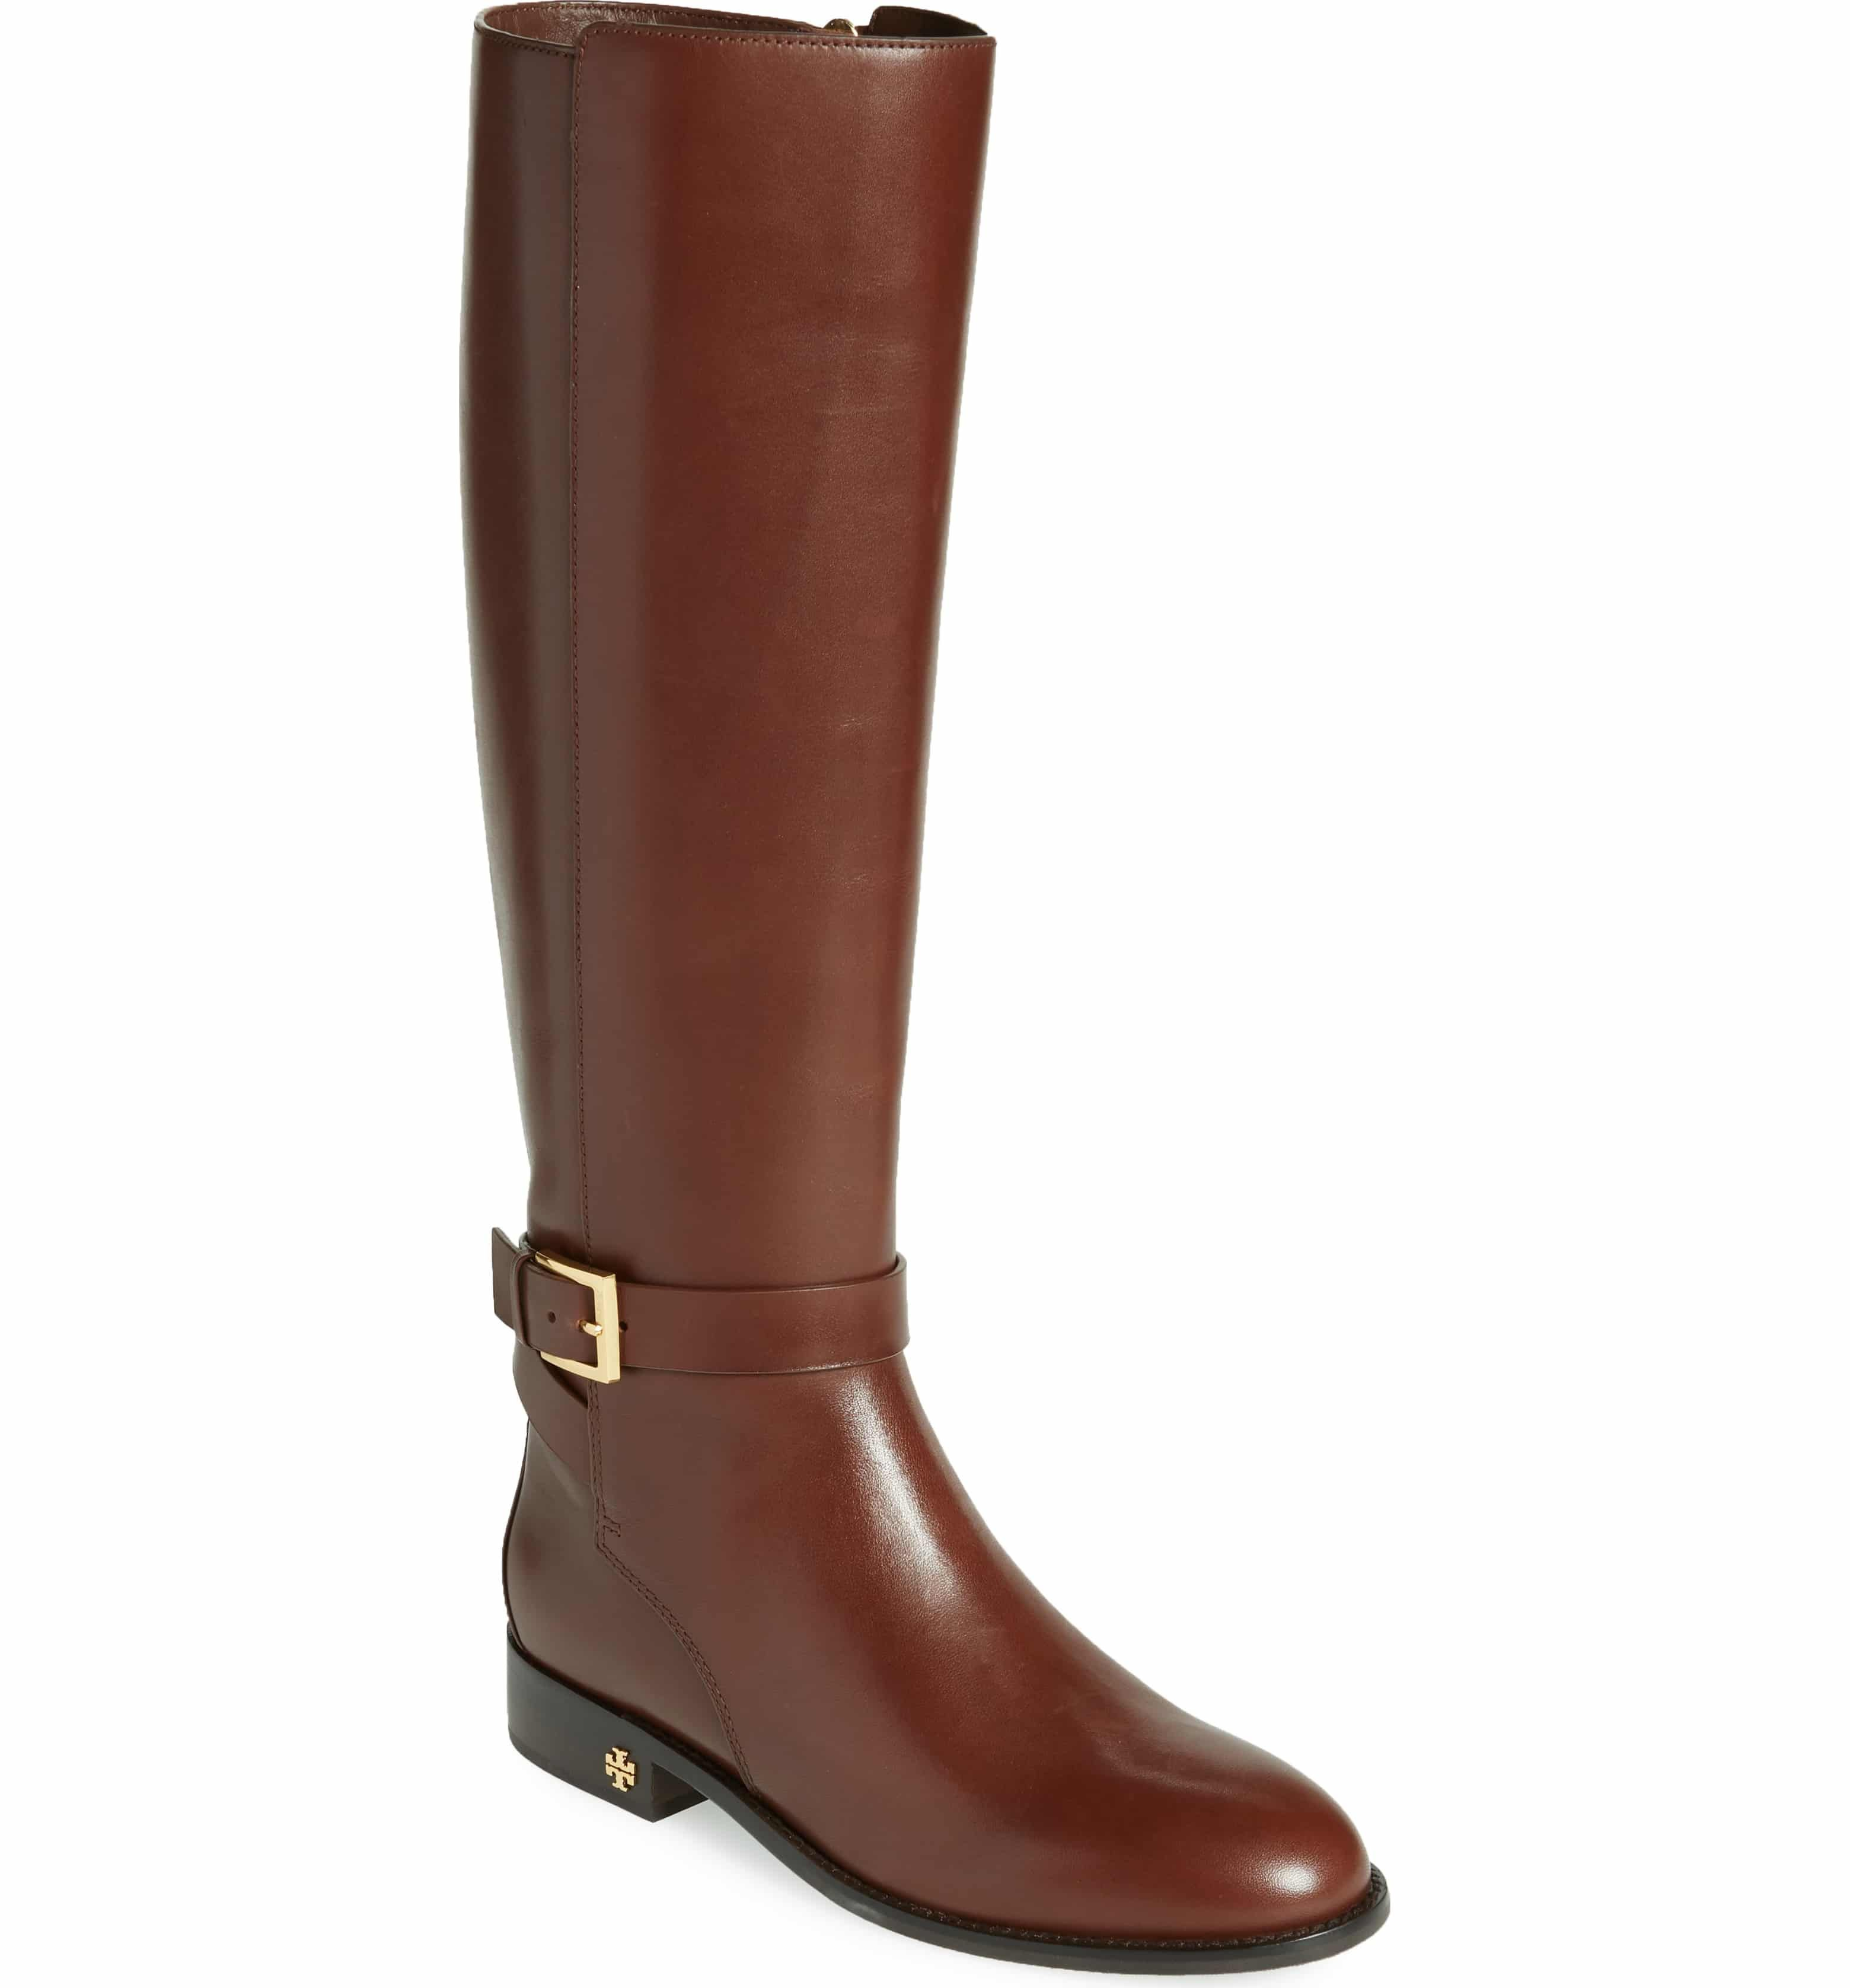 f5b99d87290 Tory Burch Brooke Knee High Boot - Perfect Brown